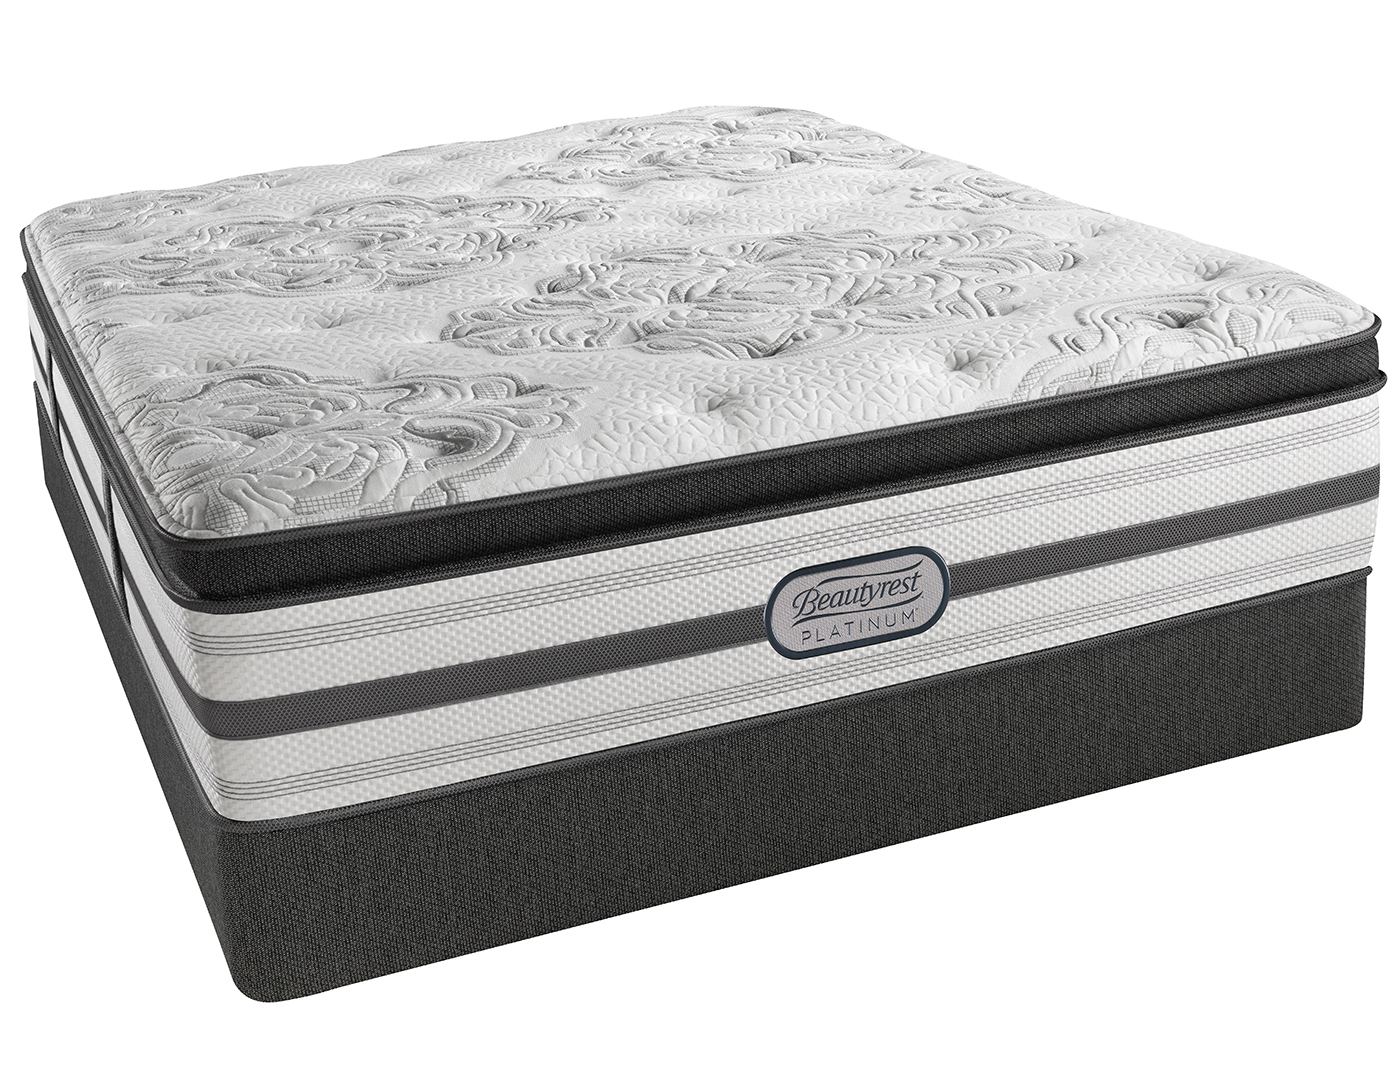 Simmons Beautyrest Platinum Emily Plush Pillowtop